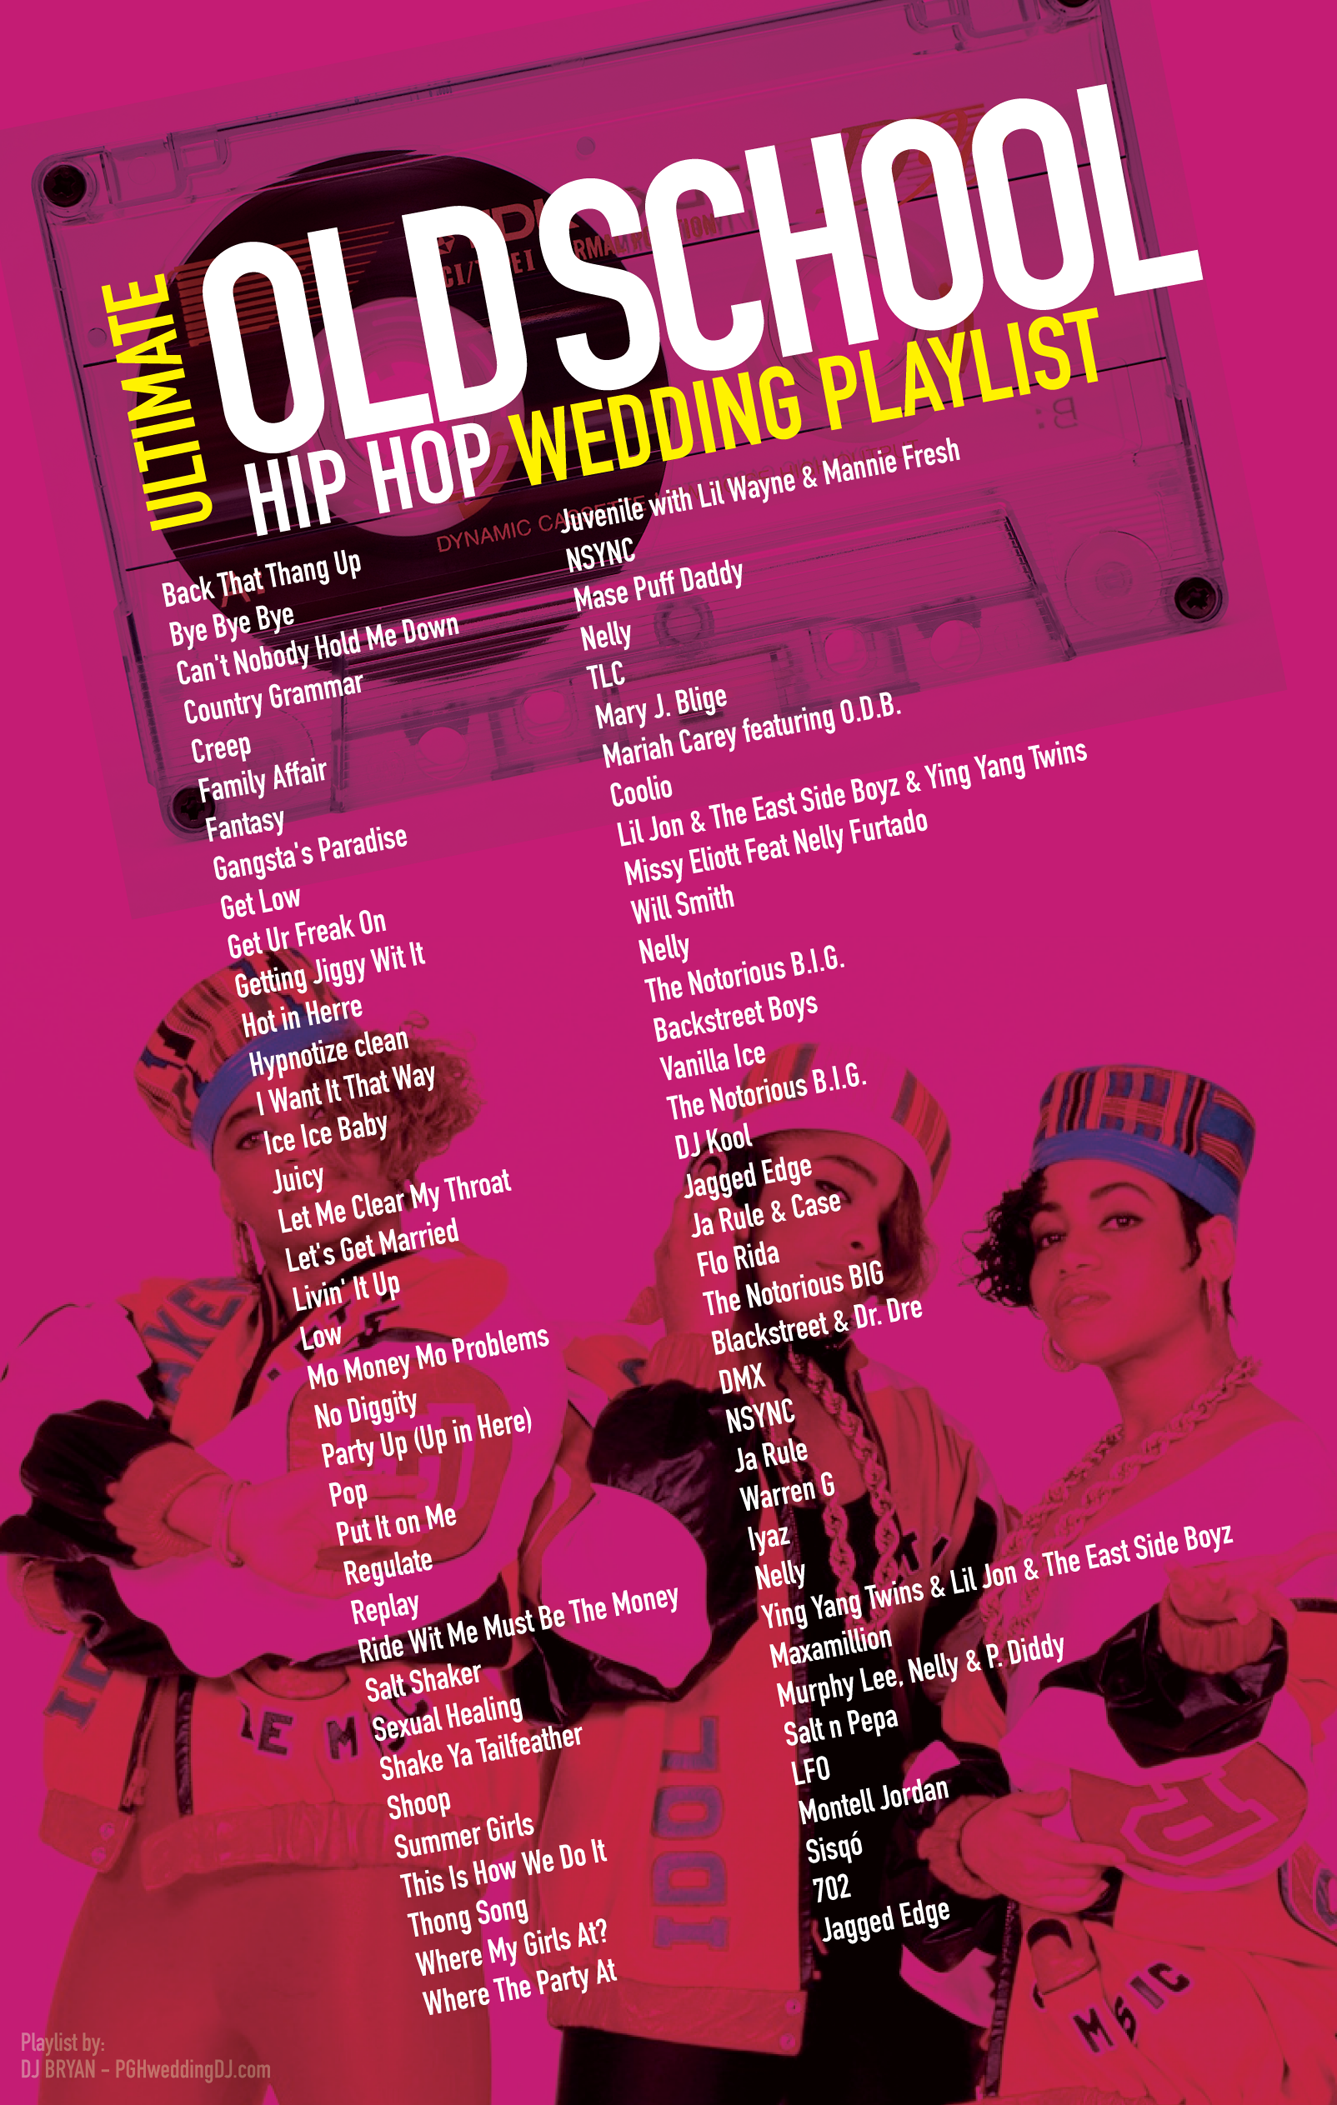 Old School Hip Hop Wedding Playlist Most Requested 90s Songs